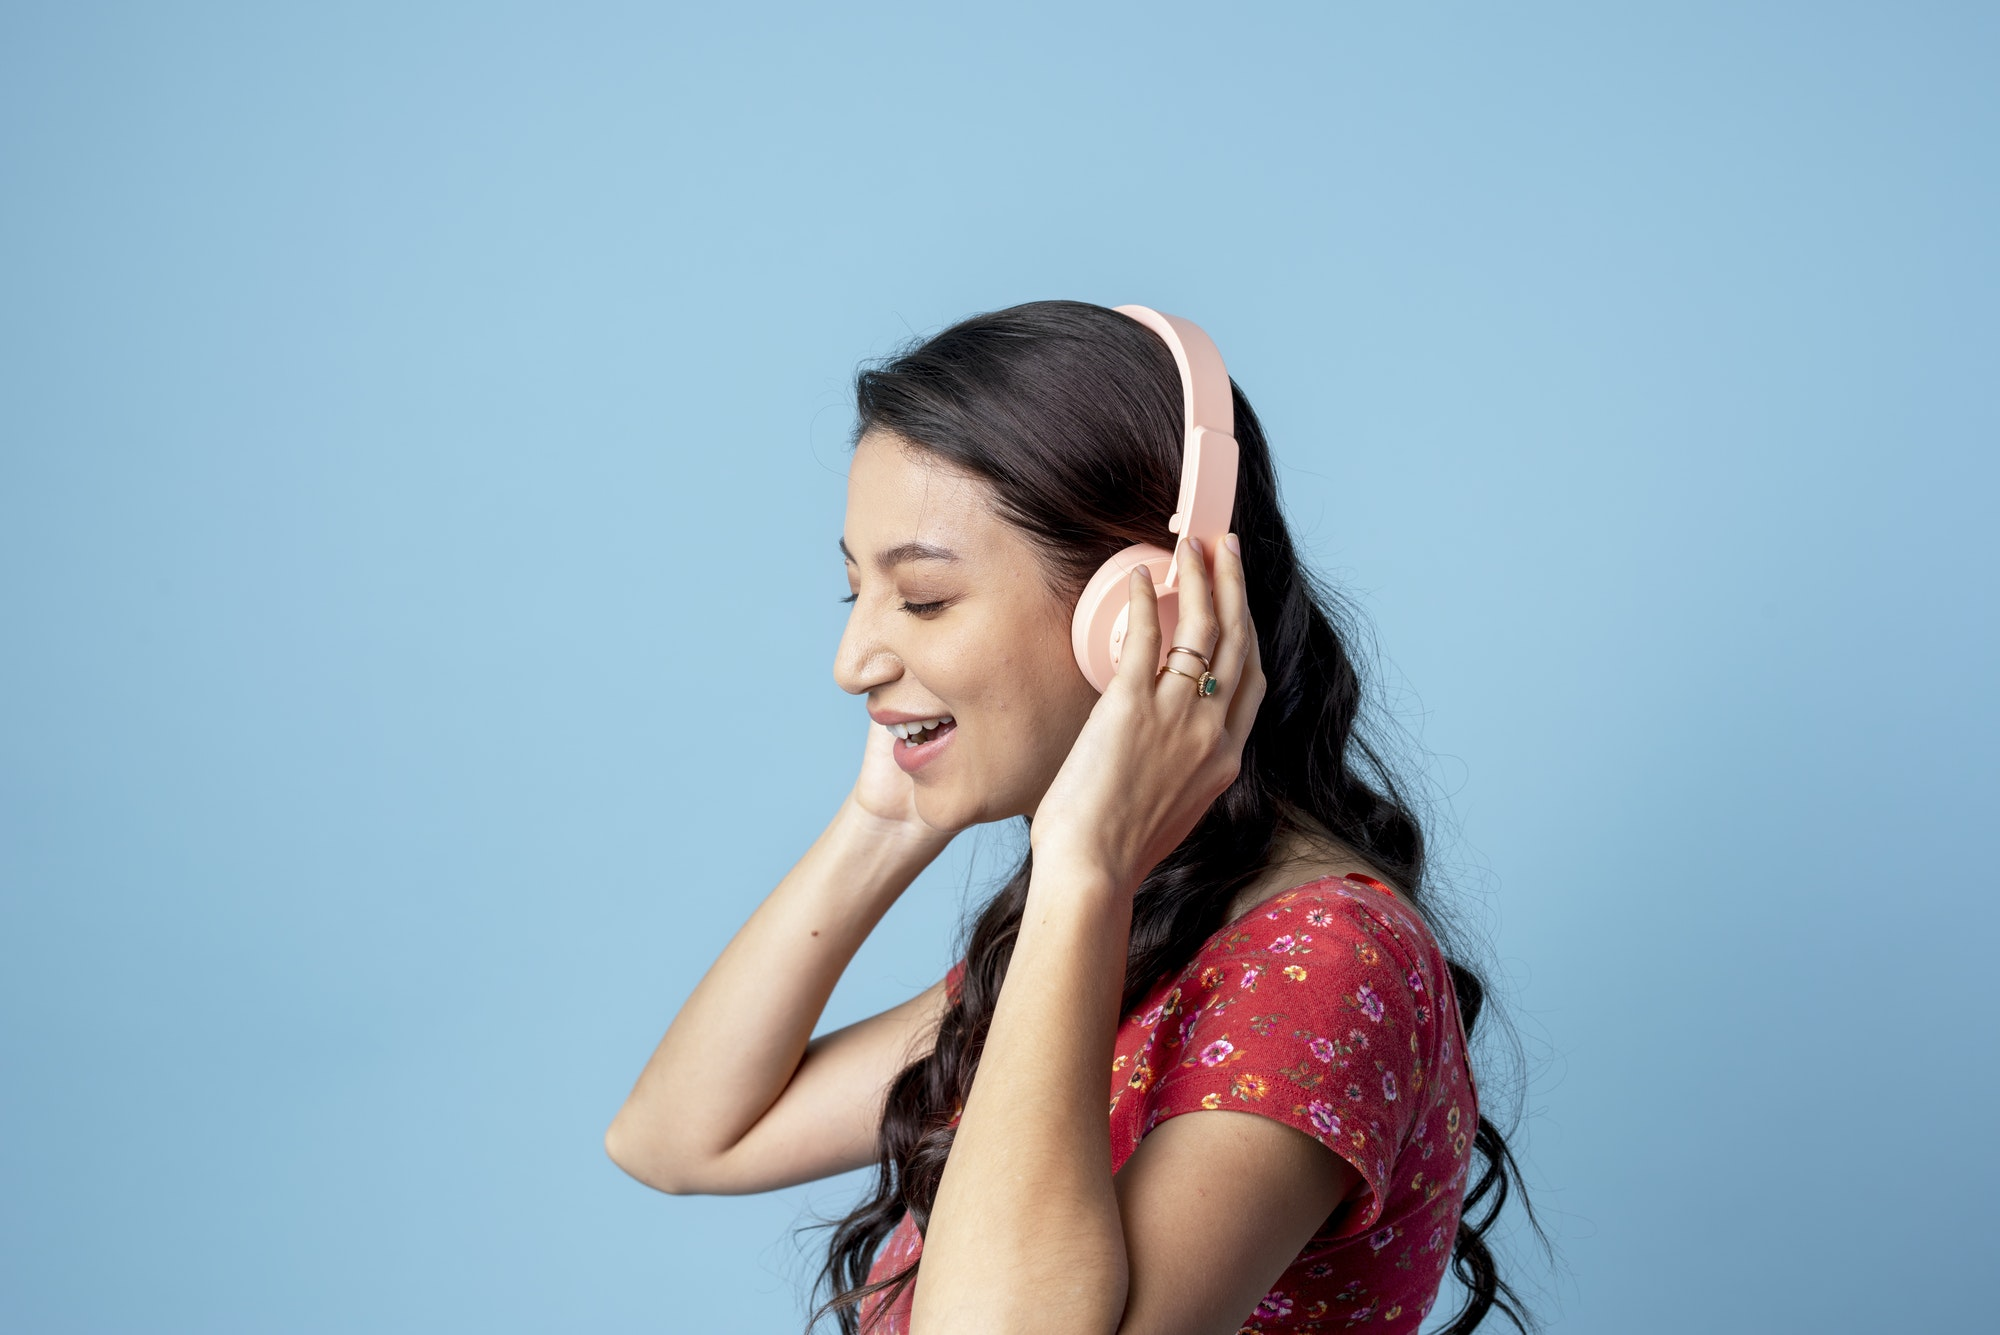 Cheerful woman listening to music with a headset on blue background